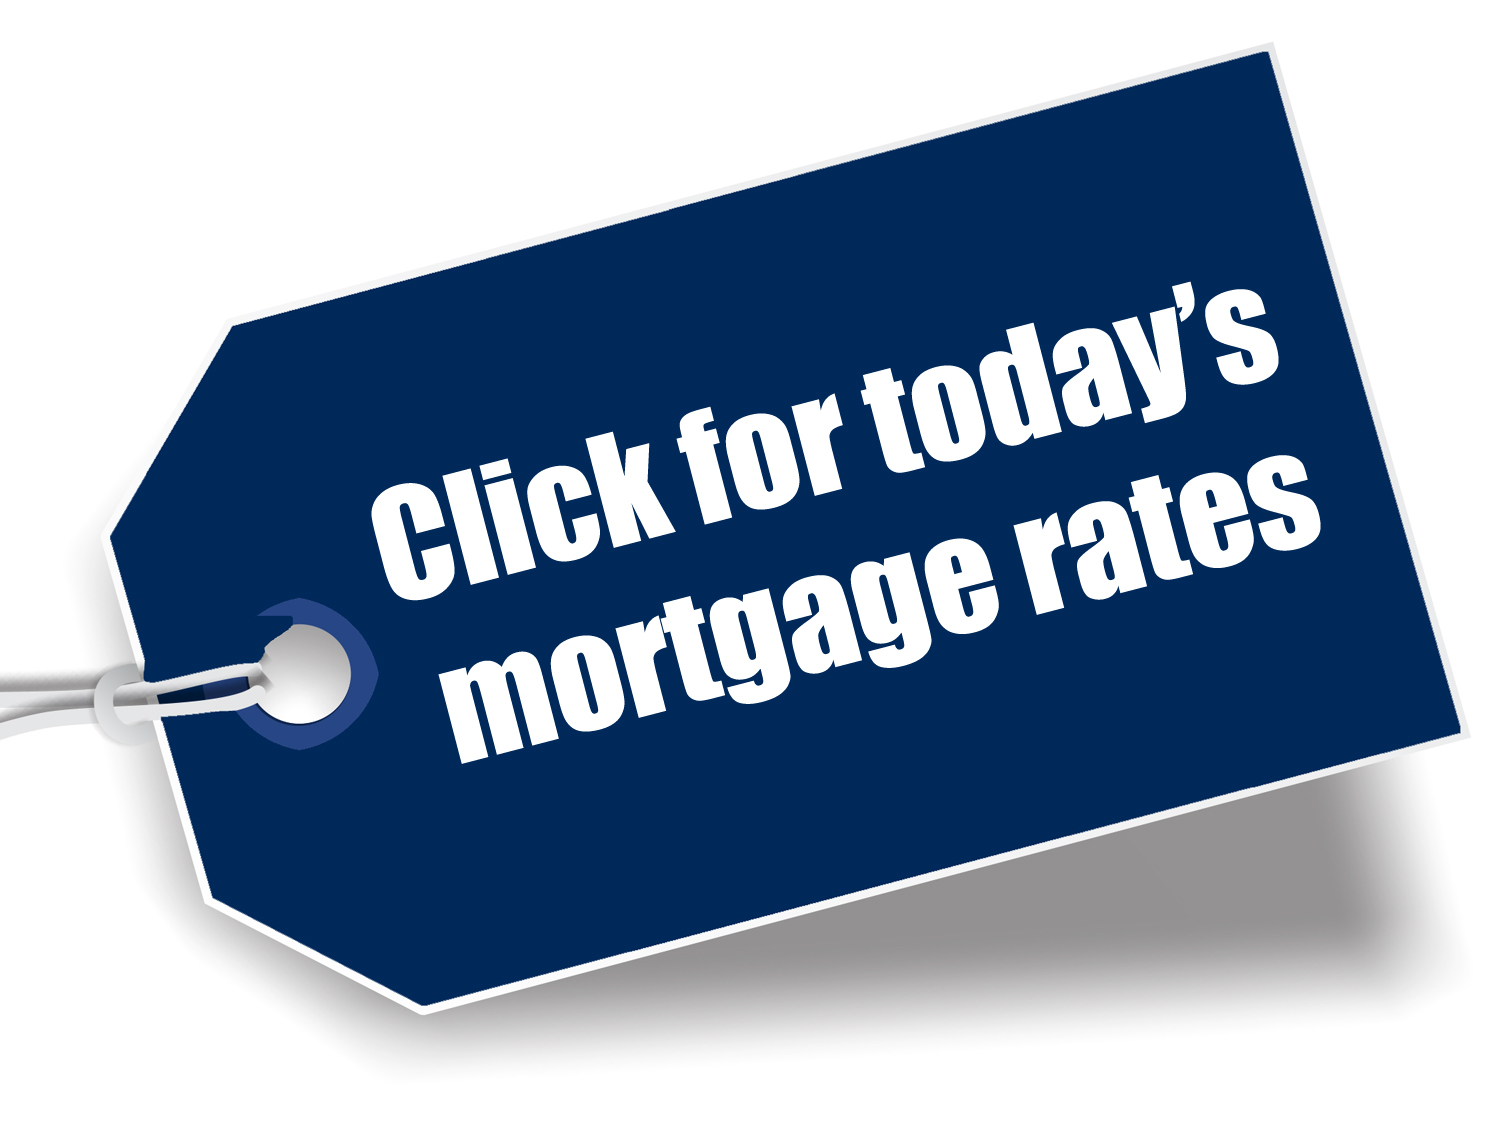 Low-mortgage-rates-copy.jpg